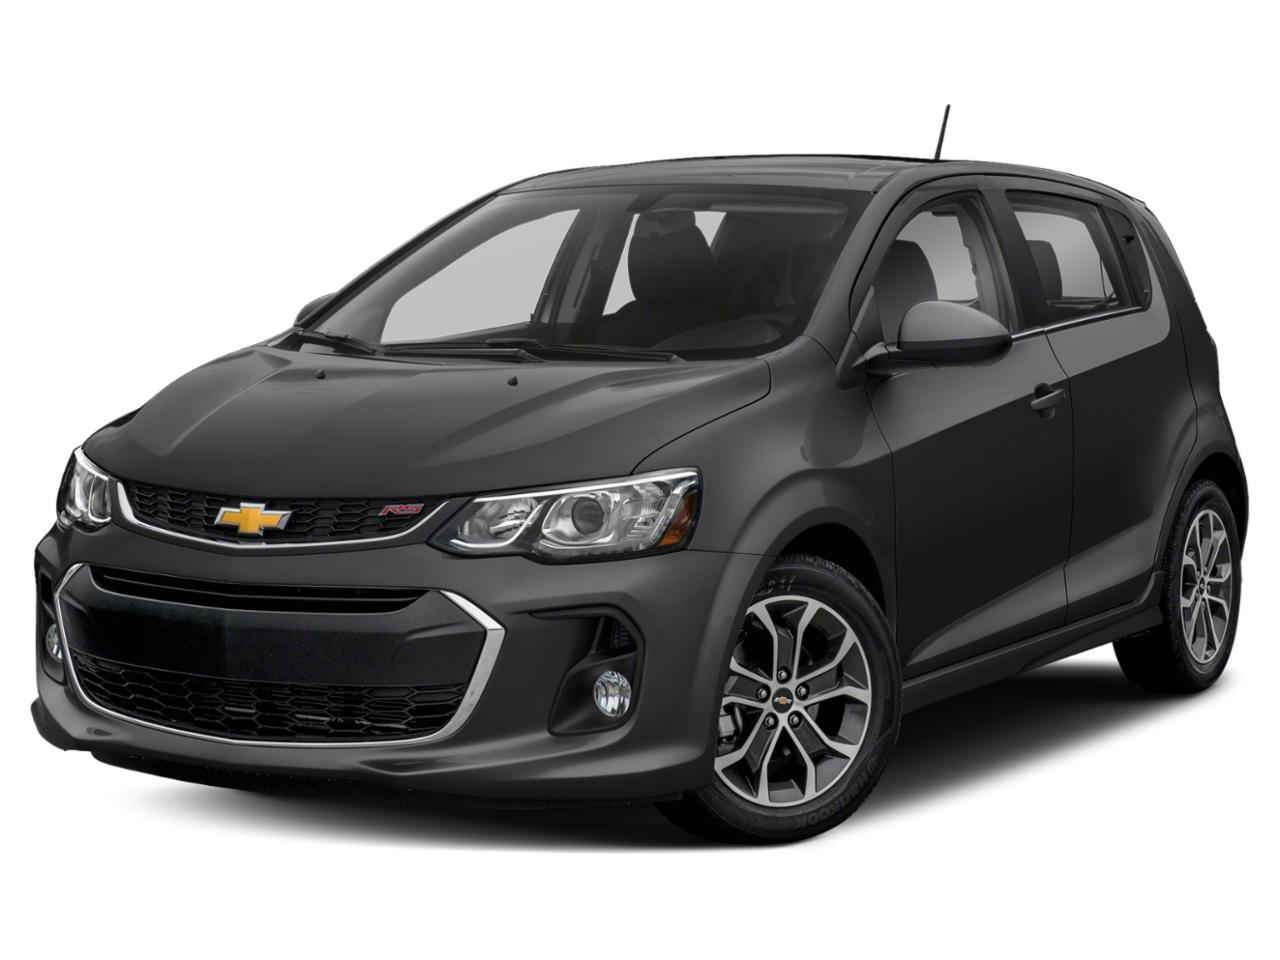 2020 Chevrolet Sonic Vehicle Photo in Livingston, NJ 07039